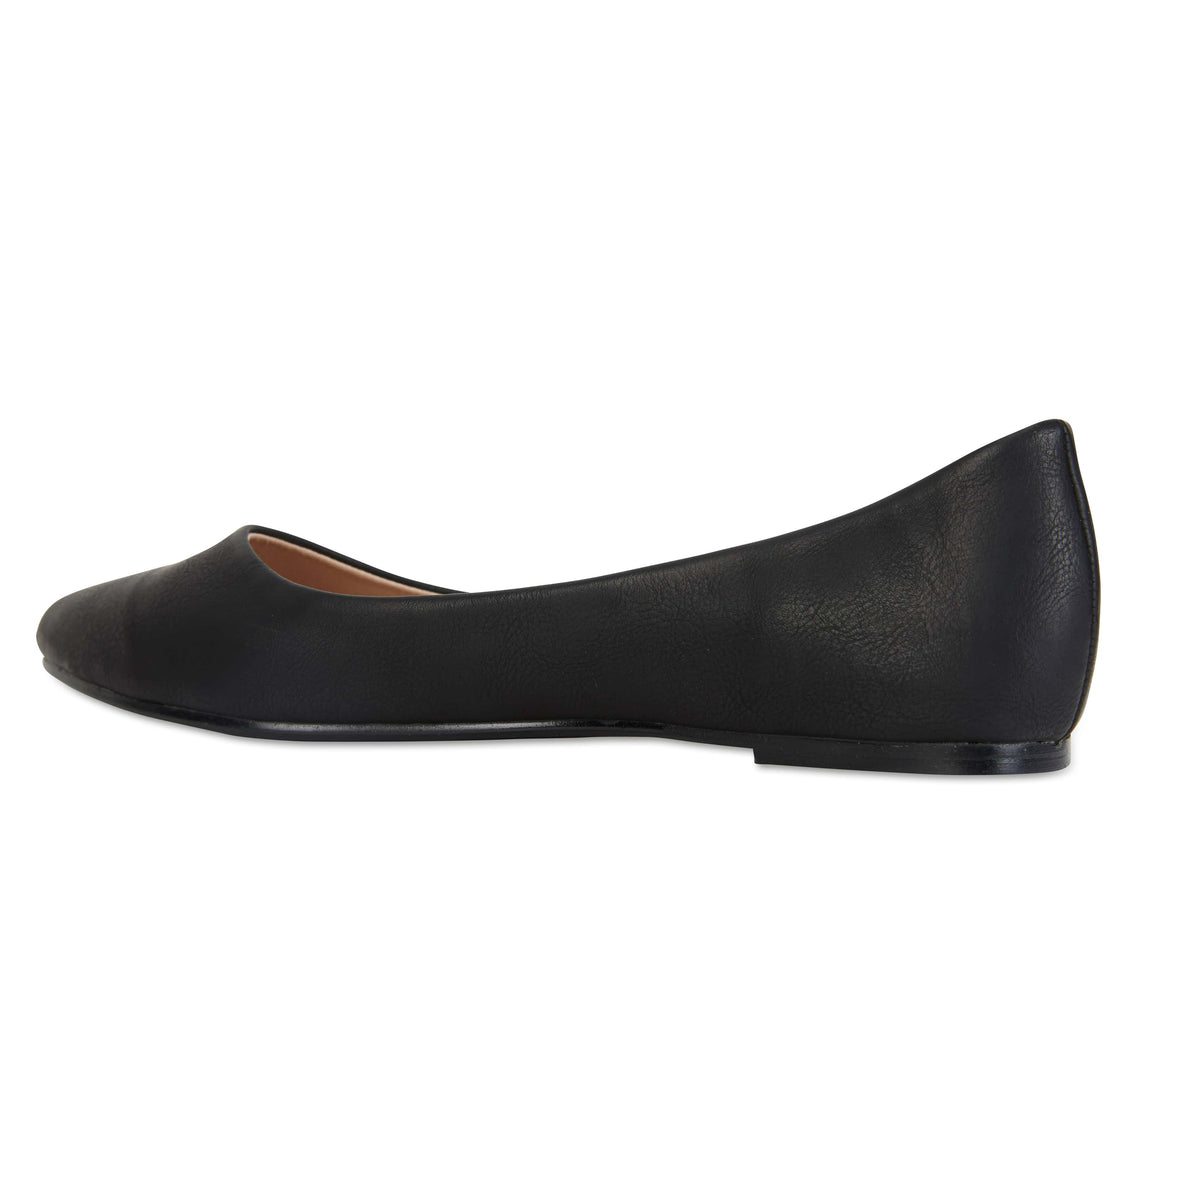 Reuben Flat in Black Smooth